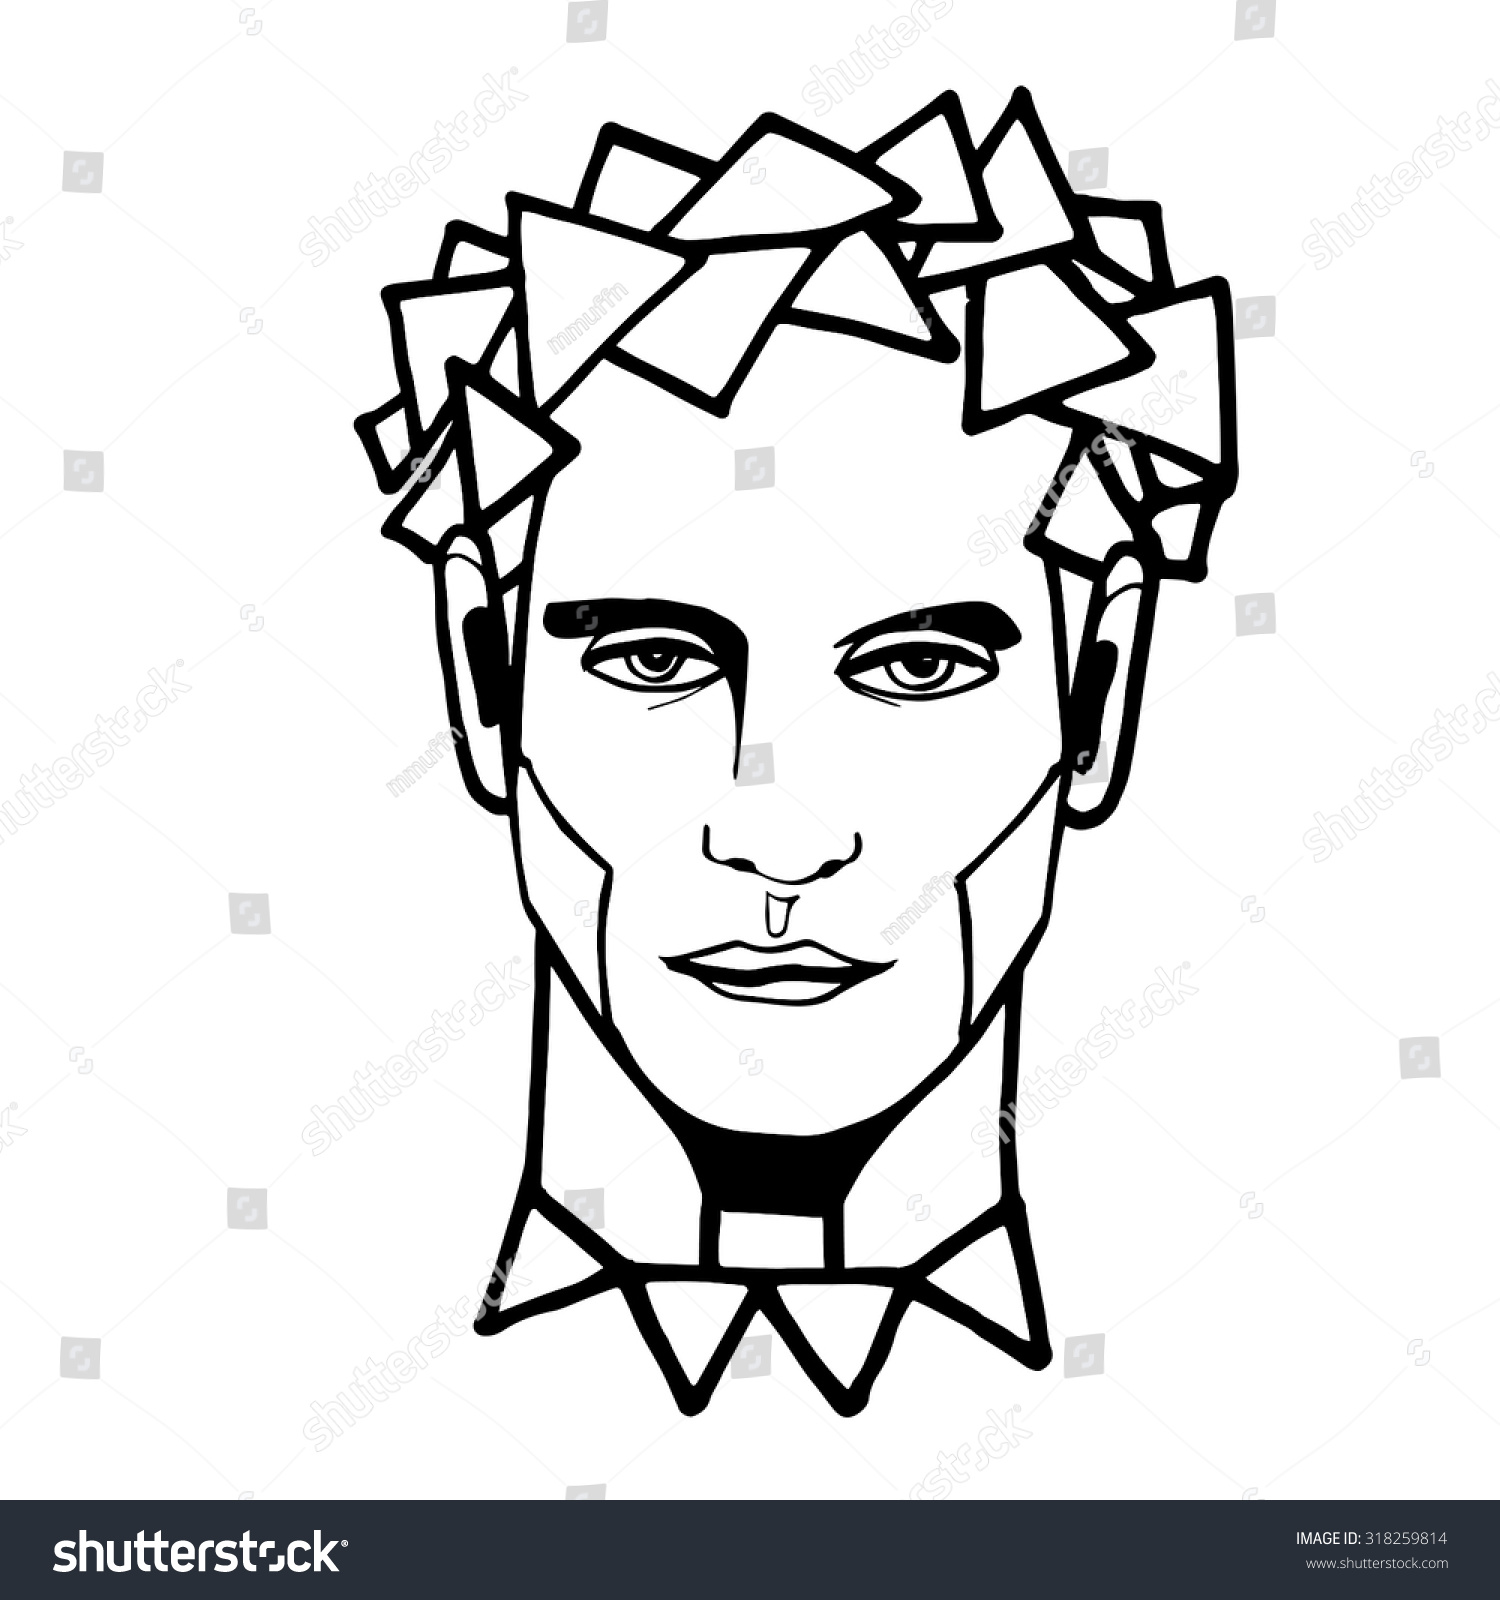 Man S Face Line Drawing : Man portrait face drawing drawings art arts graphic